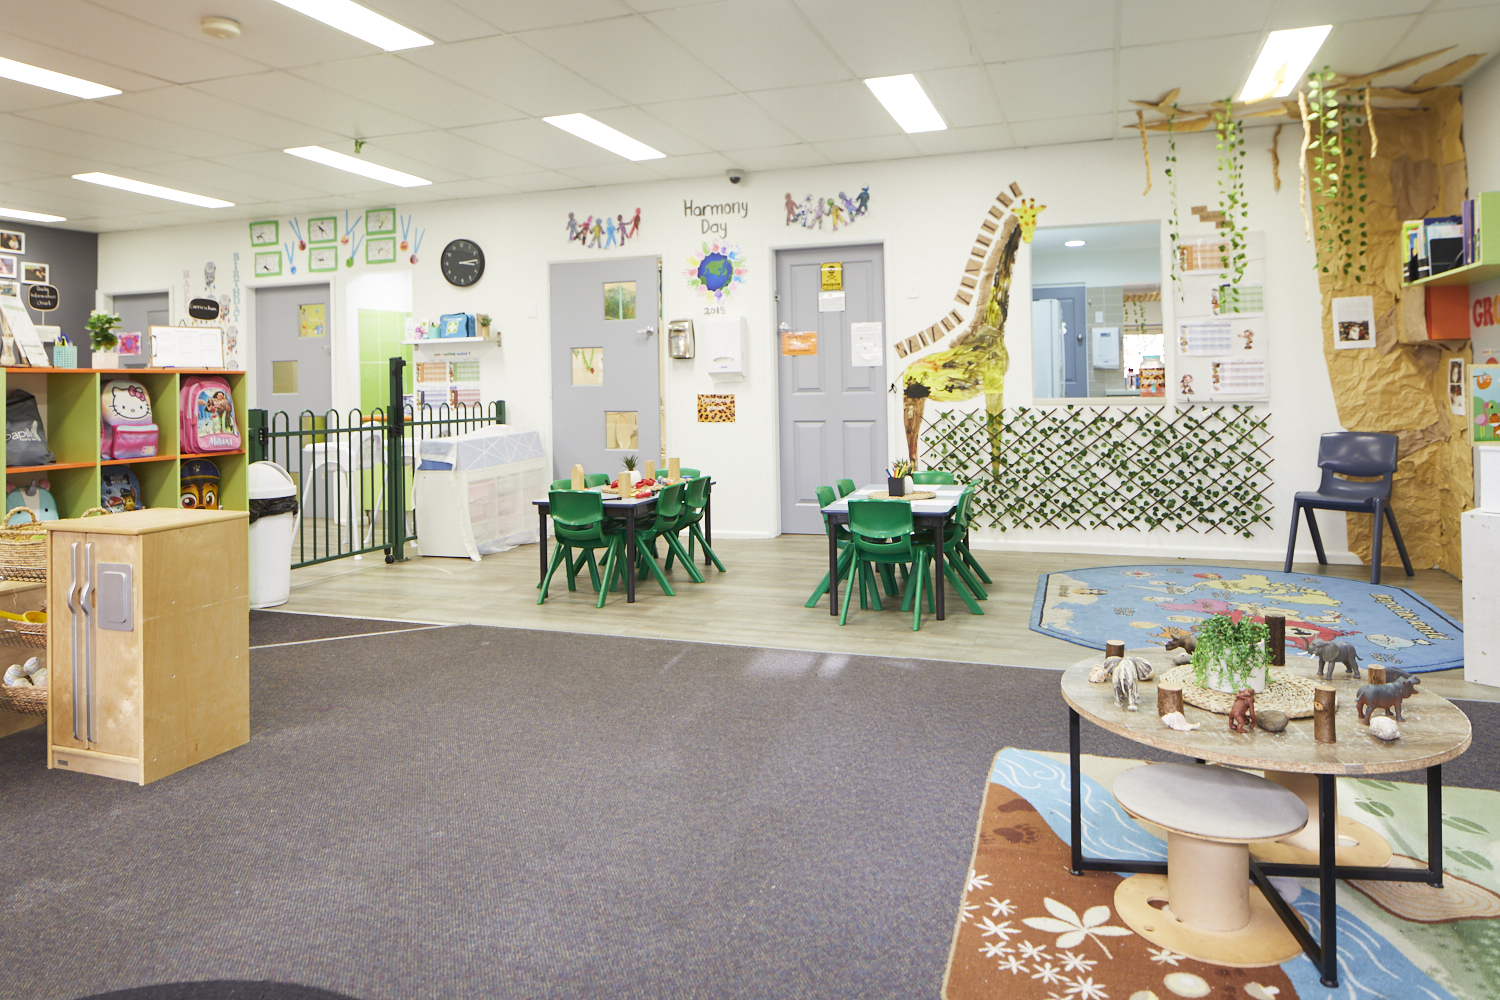 Preschool child care classroom at Papilio Ingleburn